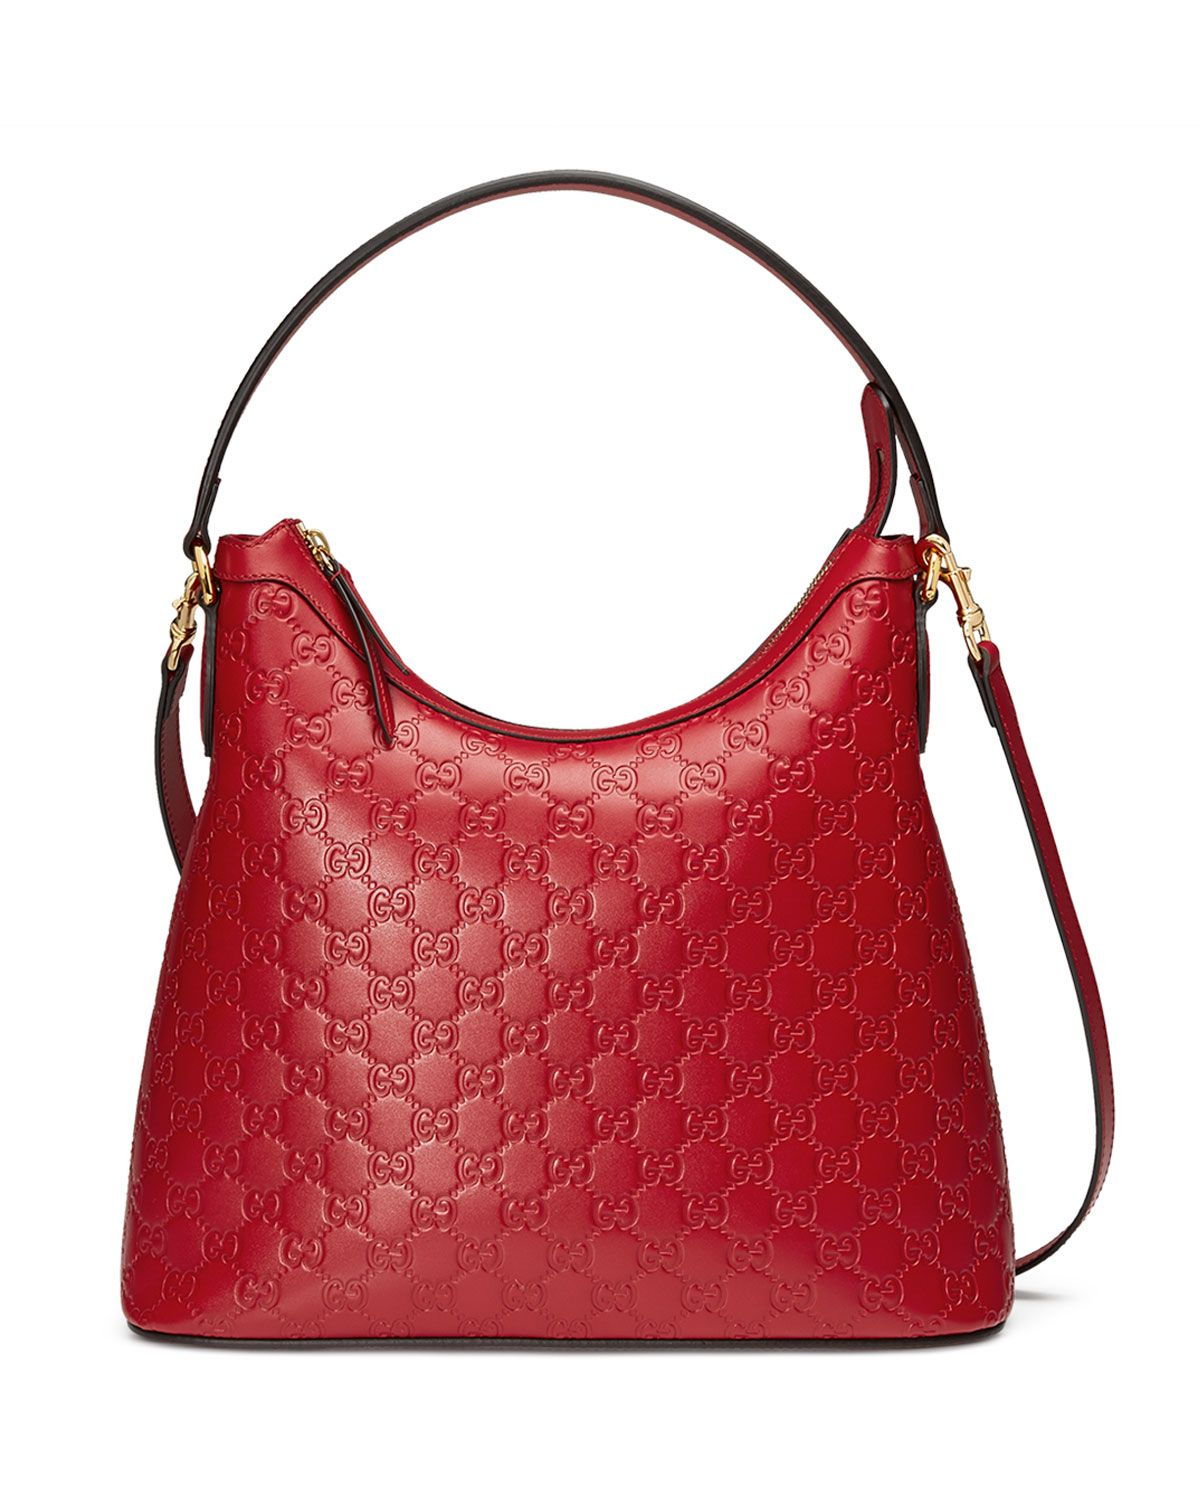 5e9d36cb5ae9 Guccissima Medium Hobo Bag, Red, Women's | *Handbags, Wallets ...